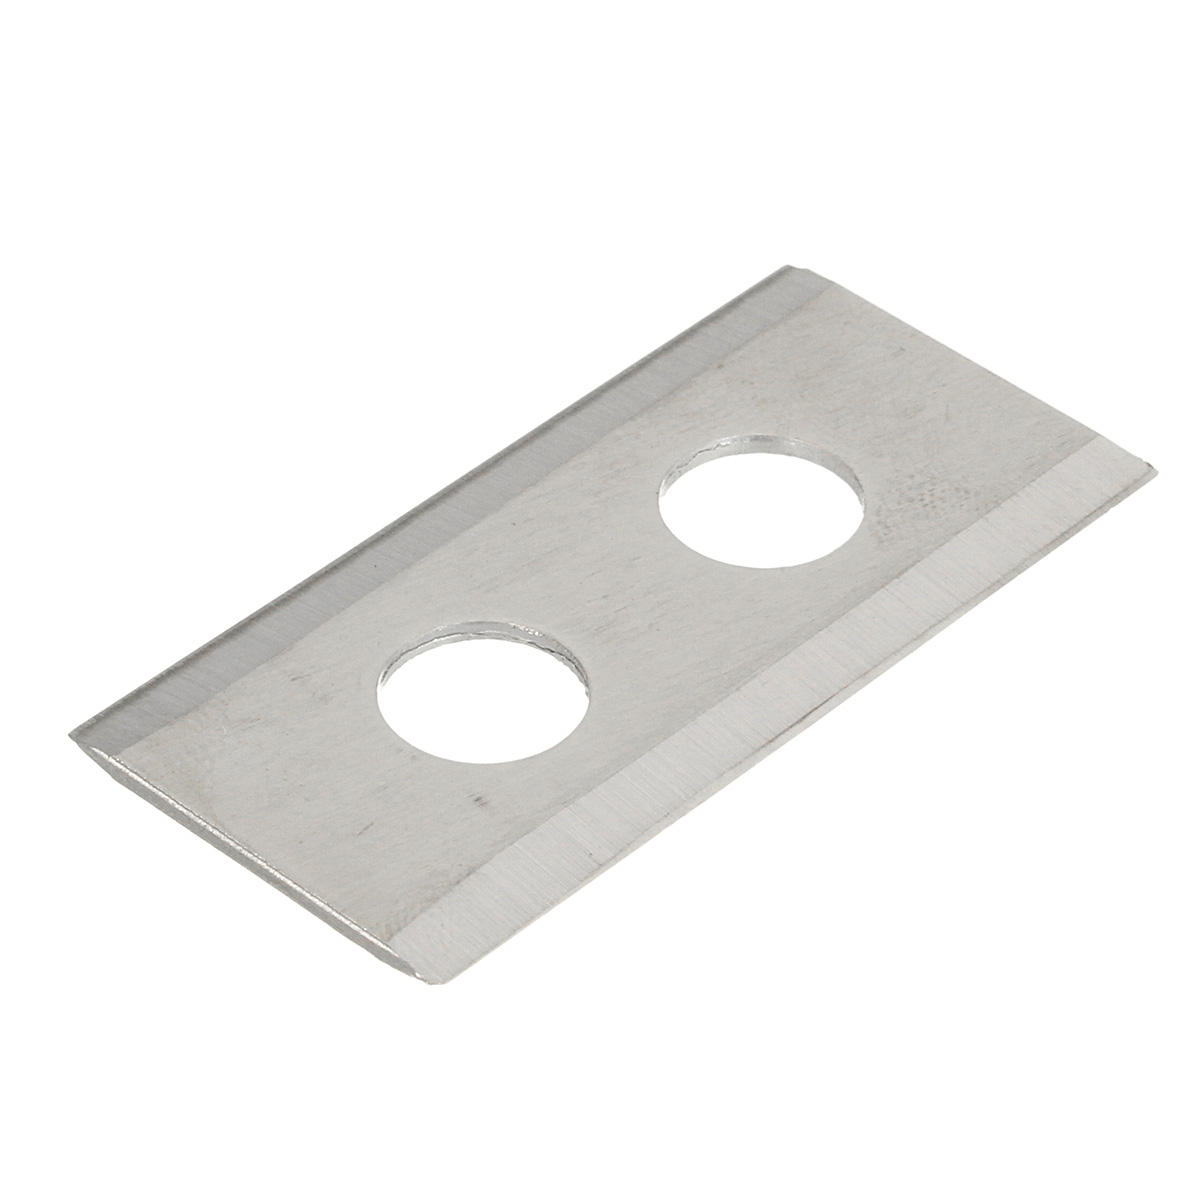 36x18x1mm Stainless Steel Robotic Mower Blades Replacement for Worx Lawnmower